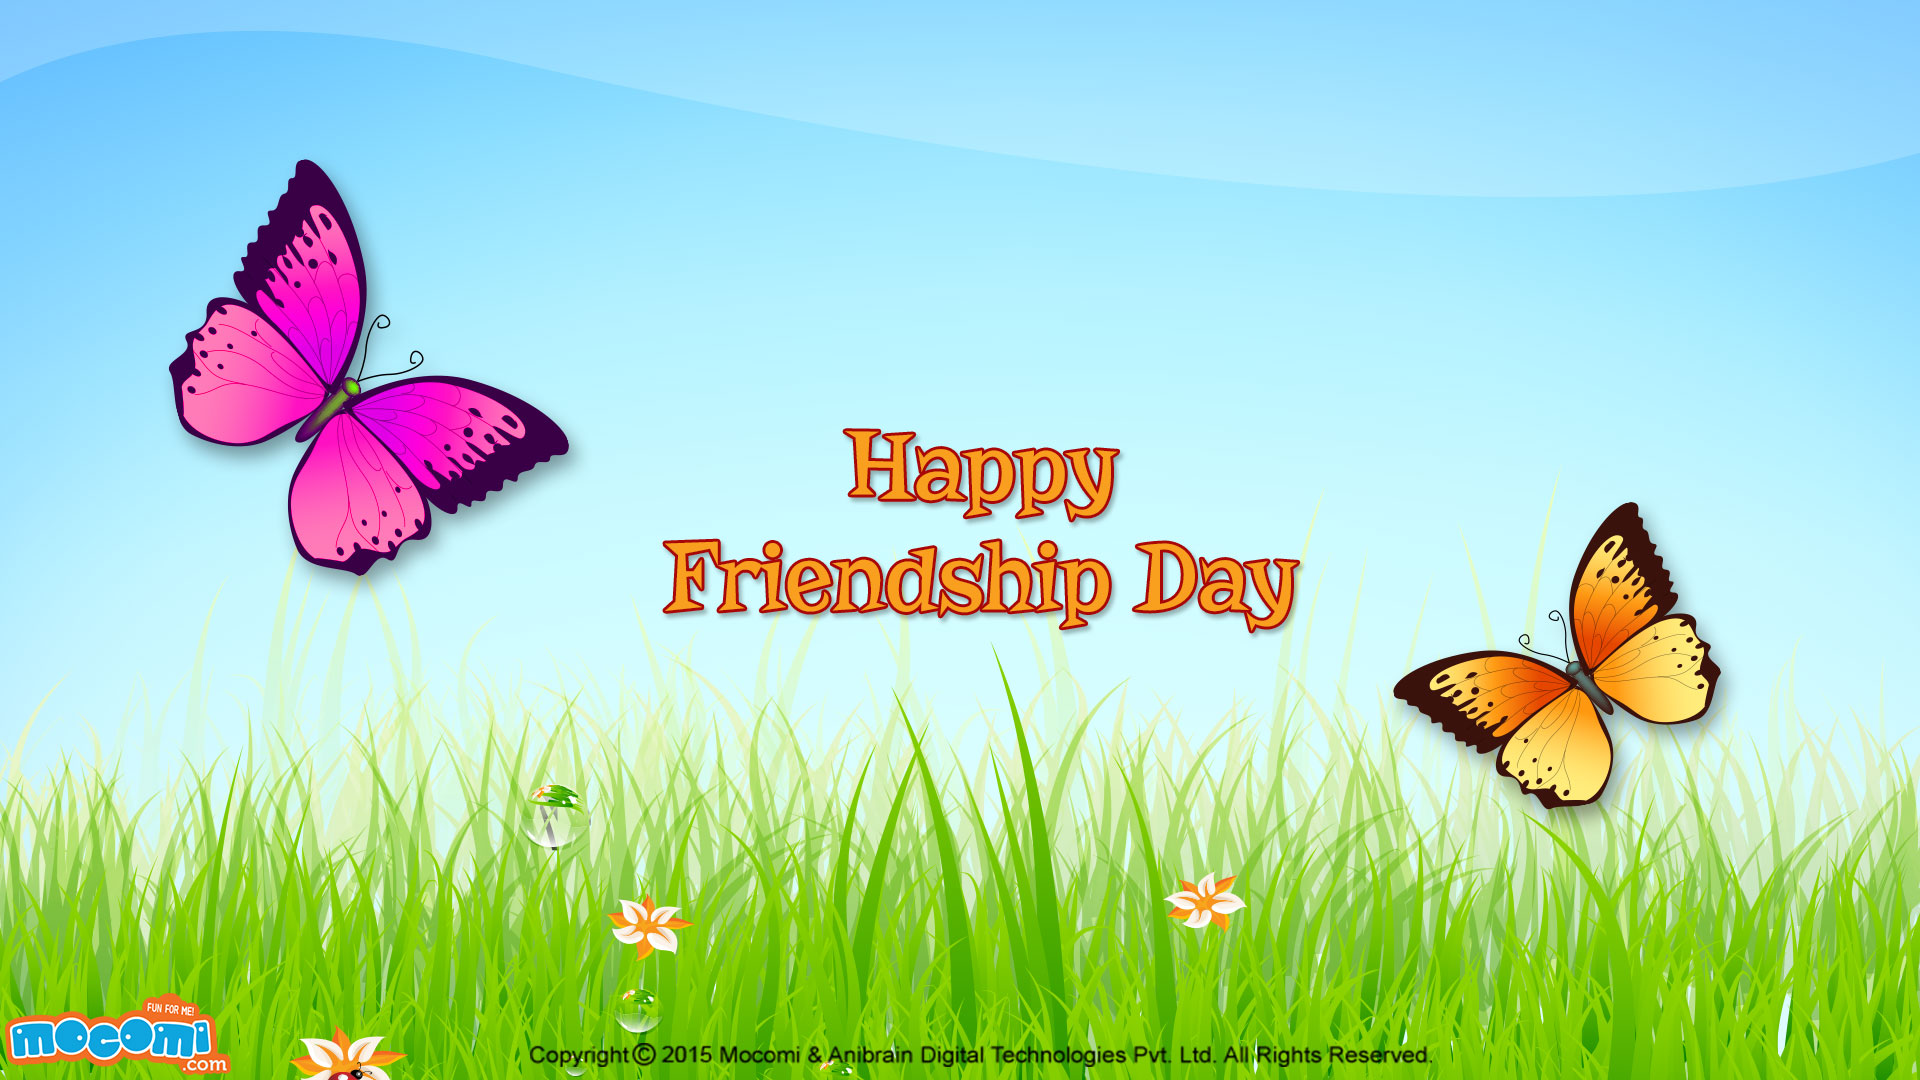 Happy Friendship Day Wallpaper – 04